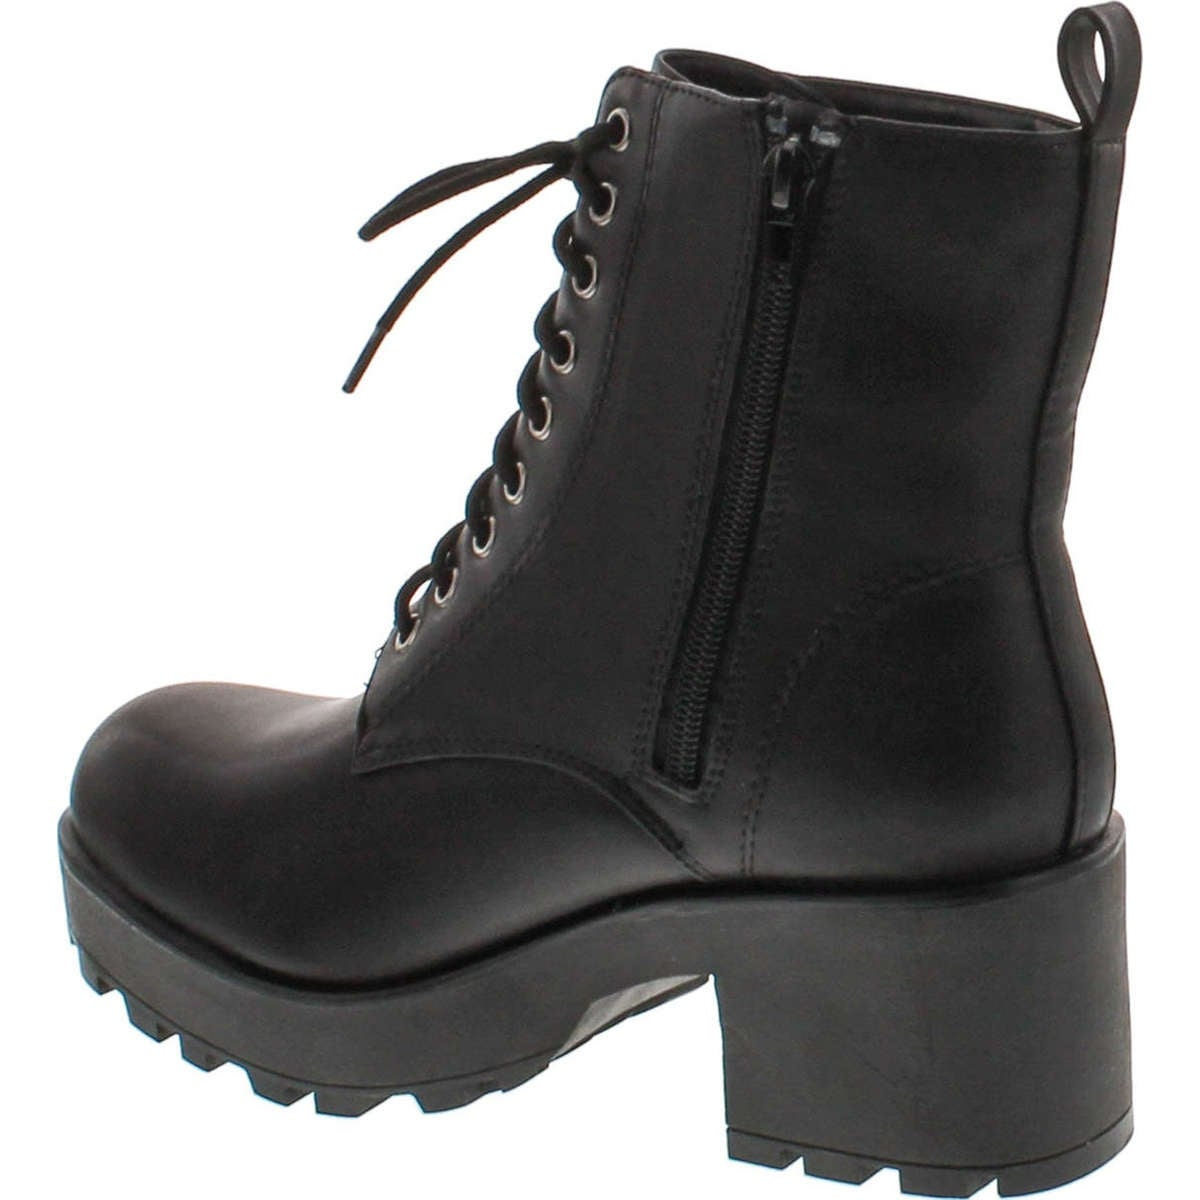 5ad6c7b7060 Shop Soda Women s Magpie Faux Leather Lace-Up Combat Mid Heel Military  Ankle Boots - Black - Free Shipping On Orders Over  45 - Overstock -  14948208